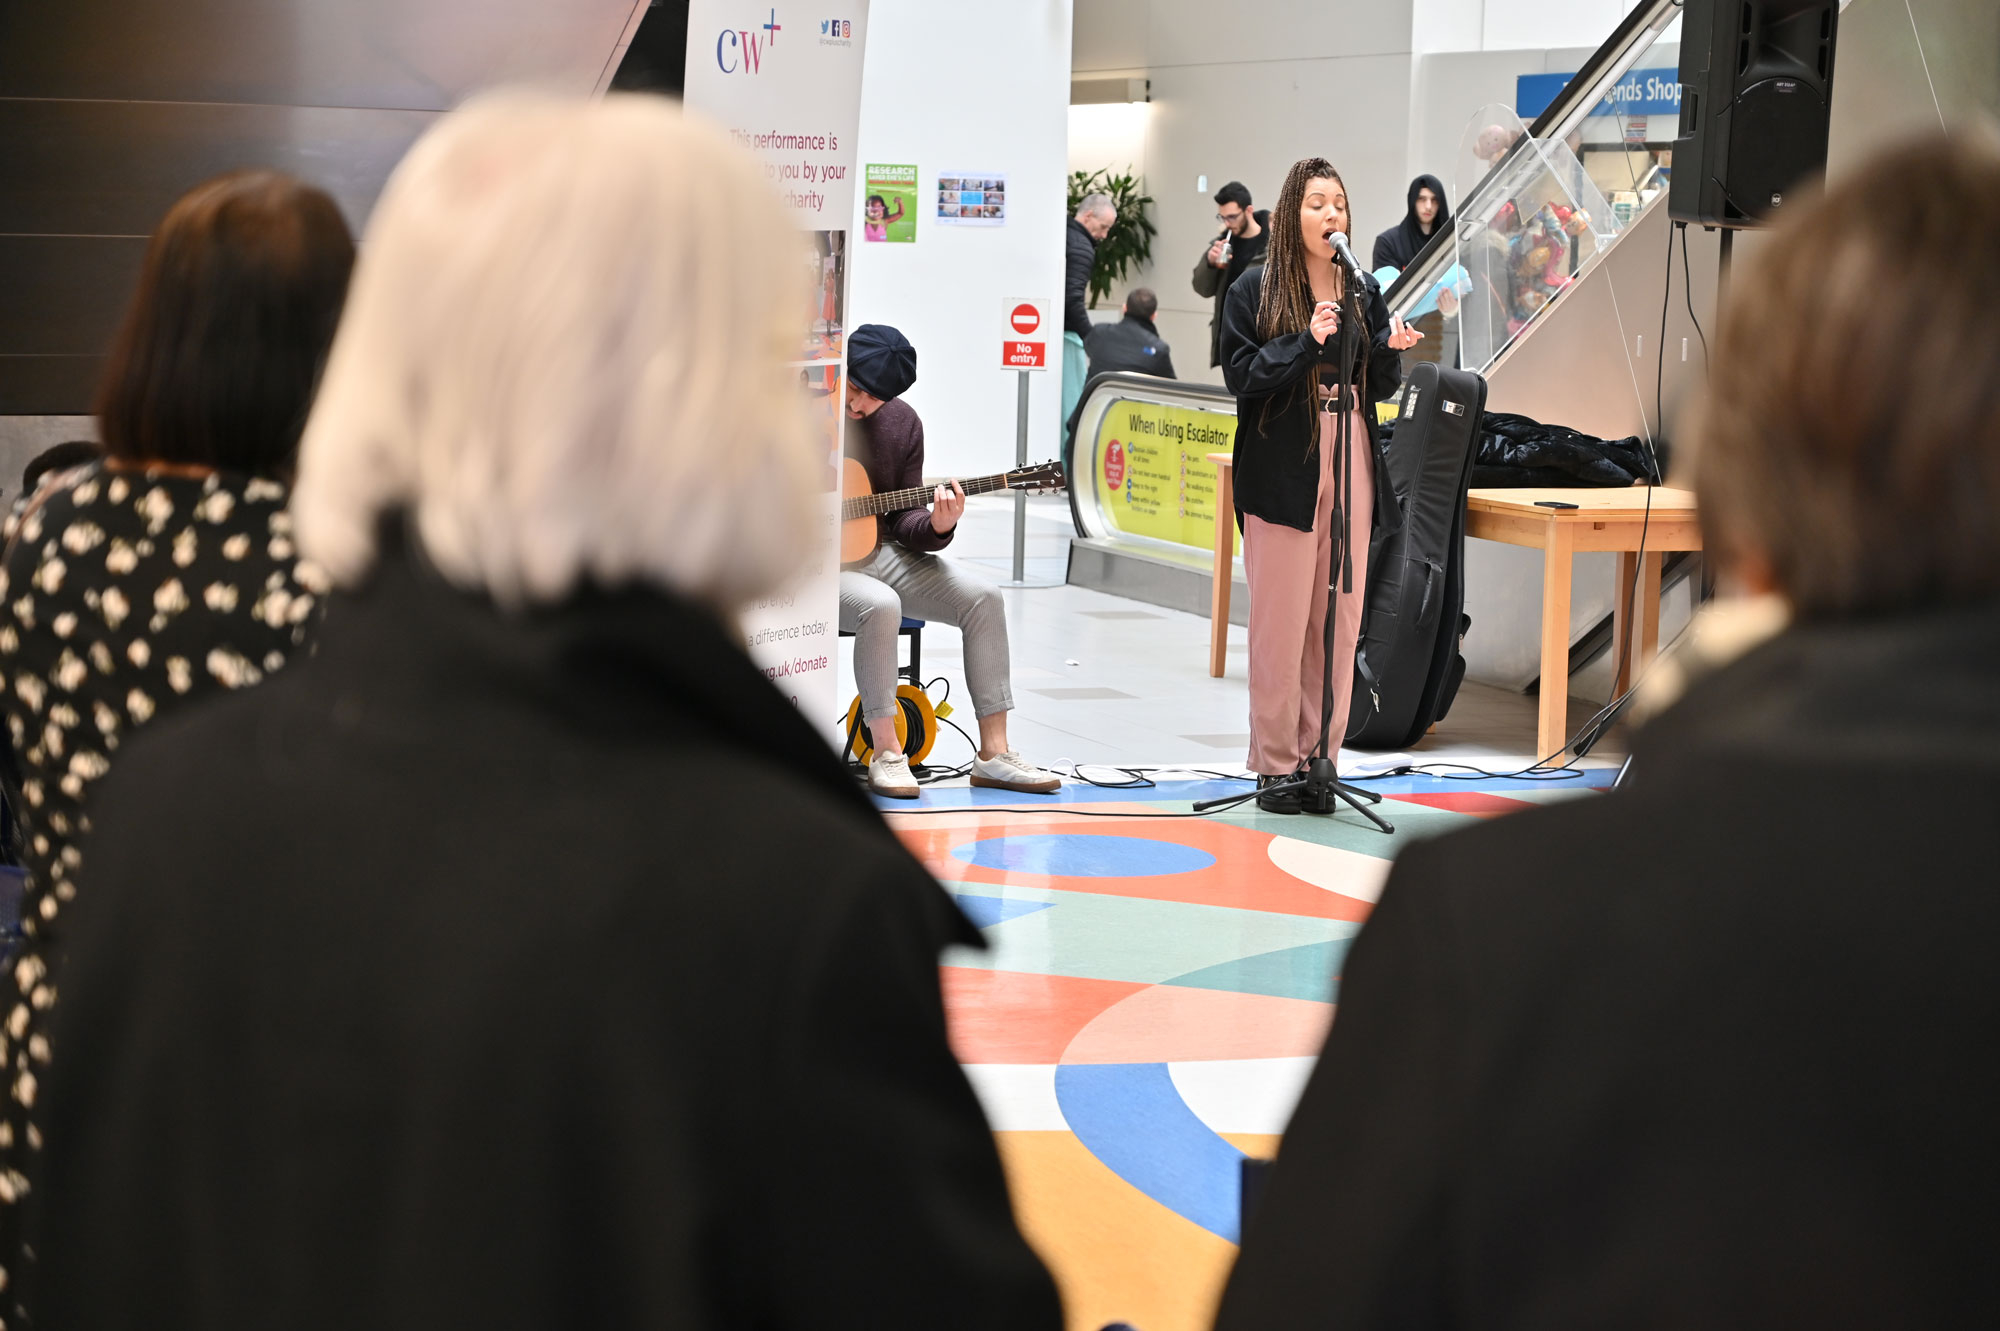 Young woman singing into microphone in a hospital atrium as visitors watch